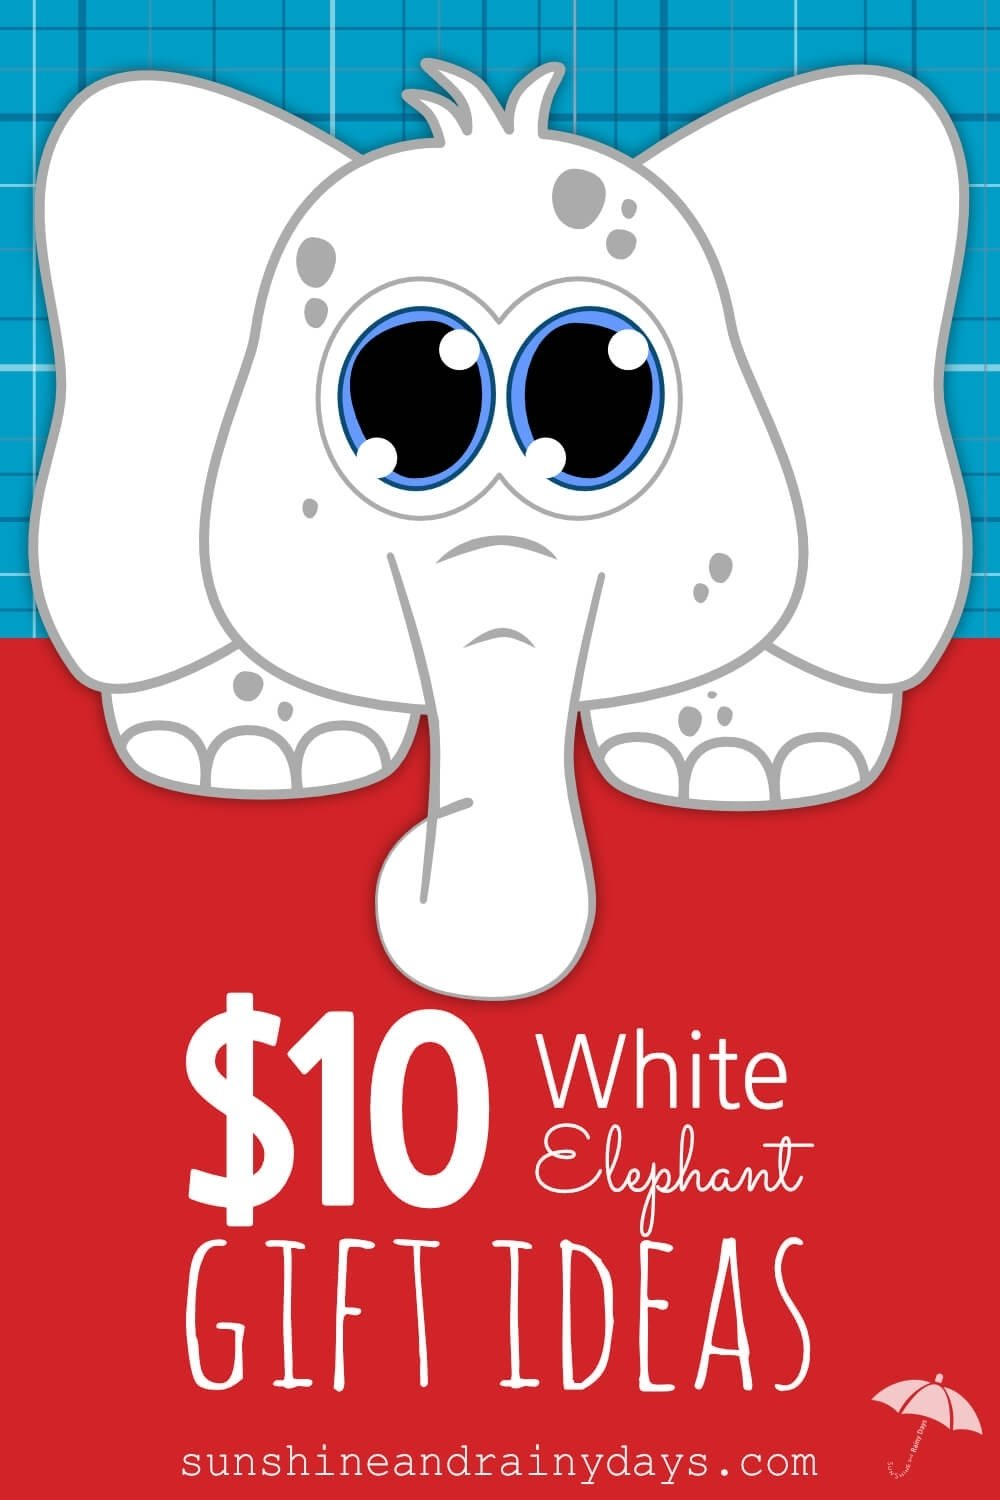 10 Perfect What Is A White Elephant Gift Ideas 10 white elephant gift exchange ideas sunshine and rainy days 5 2020